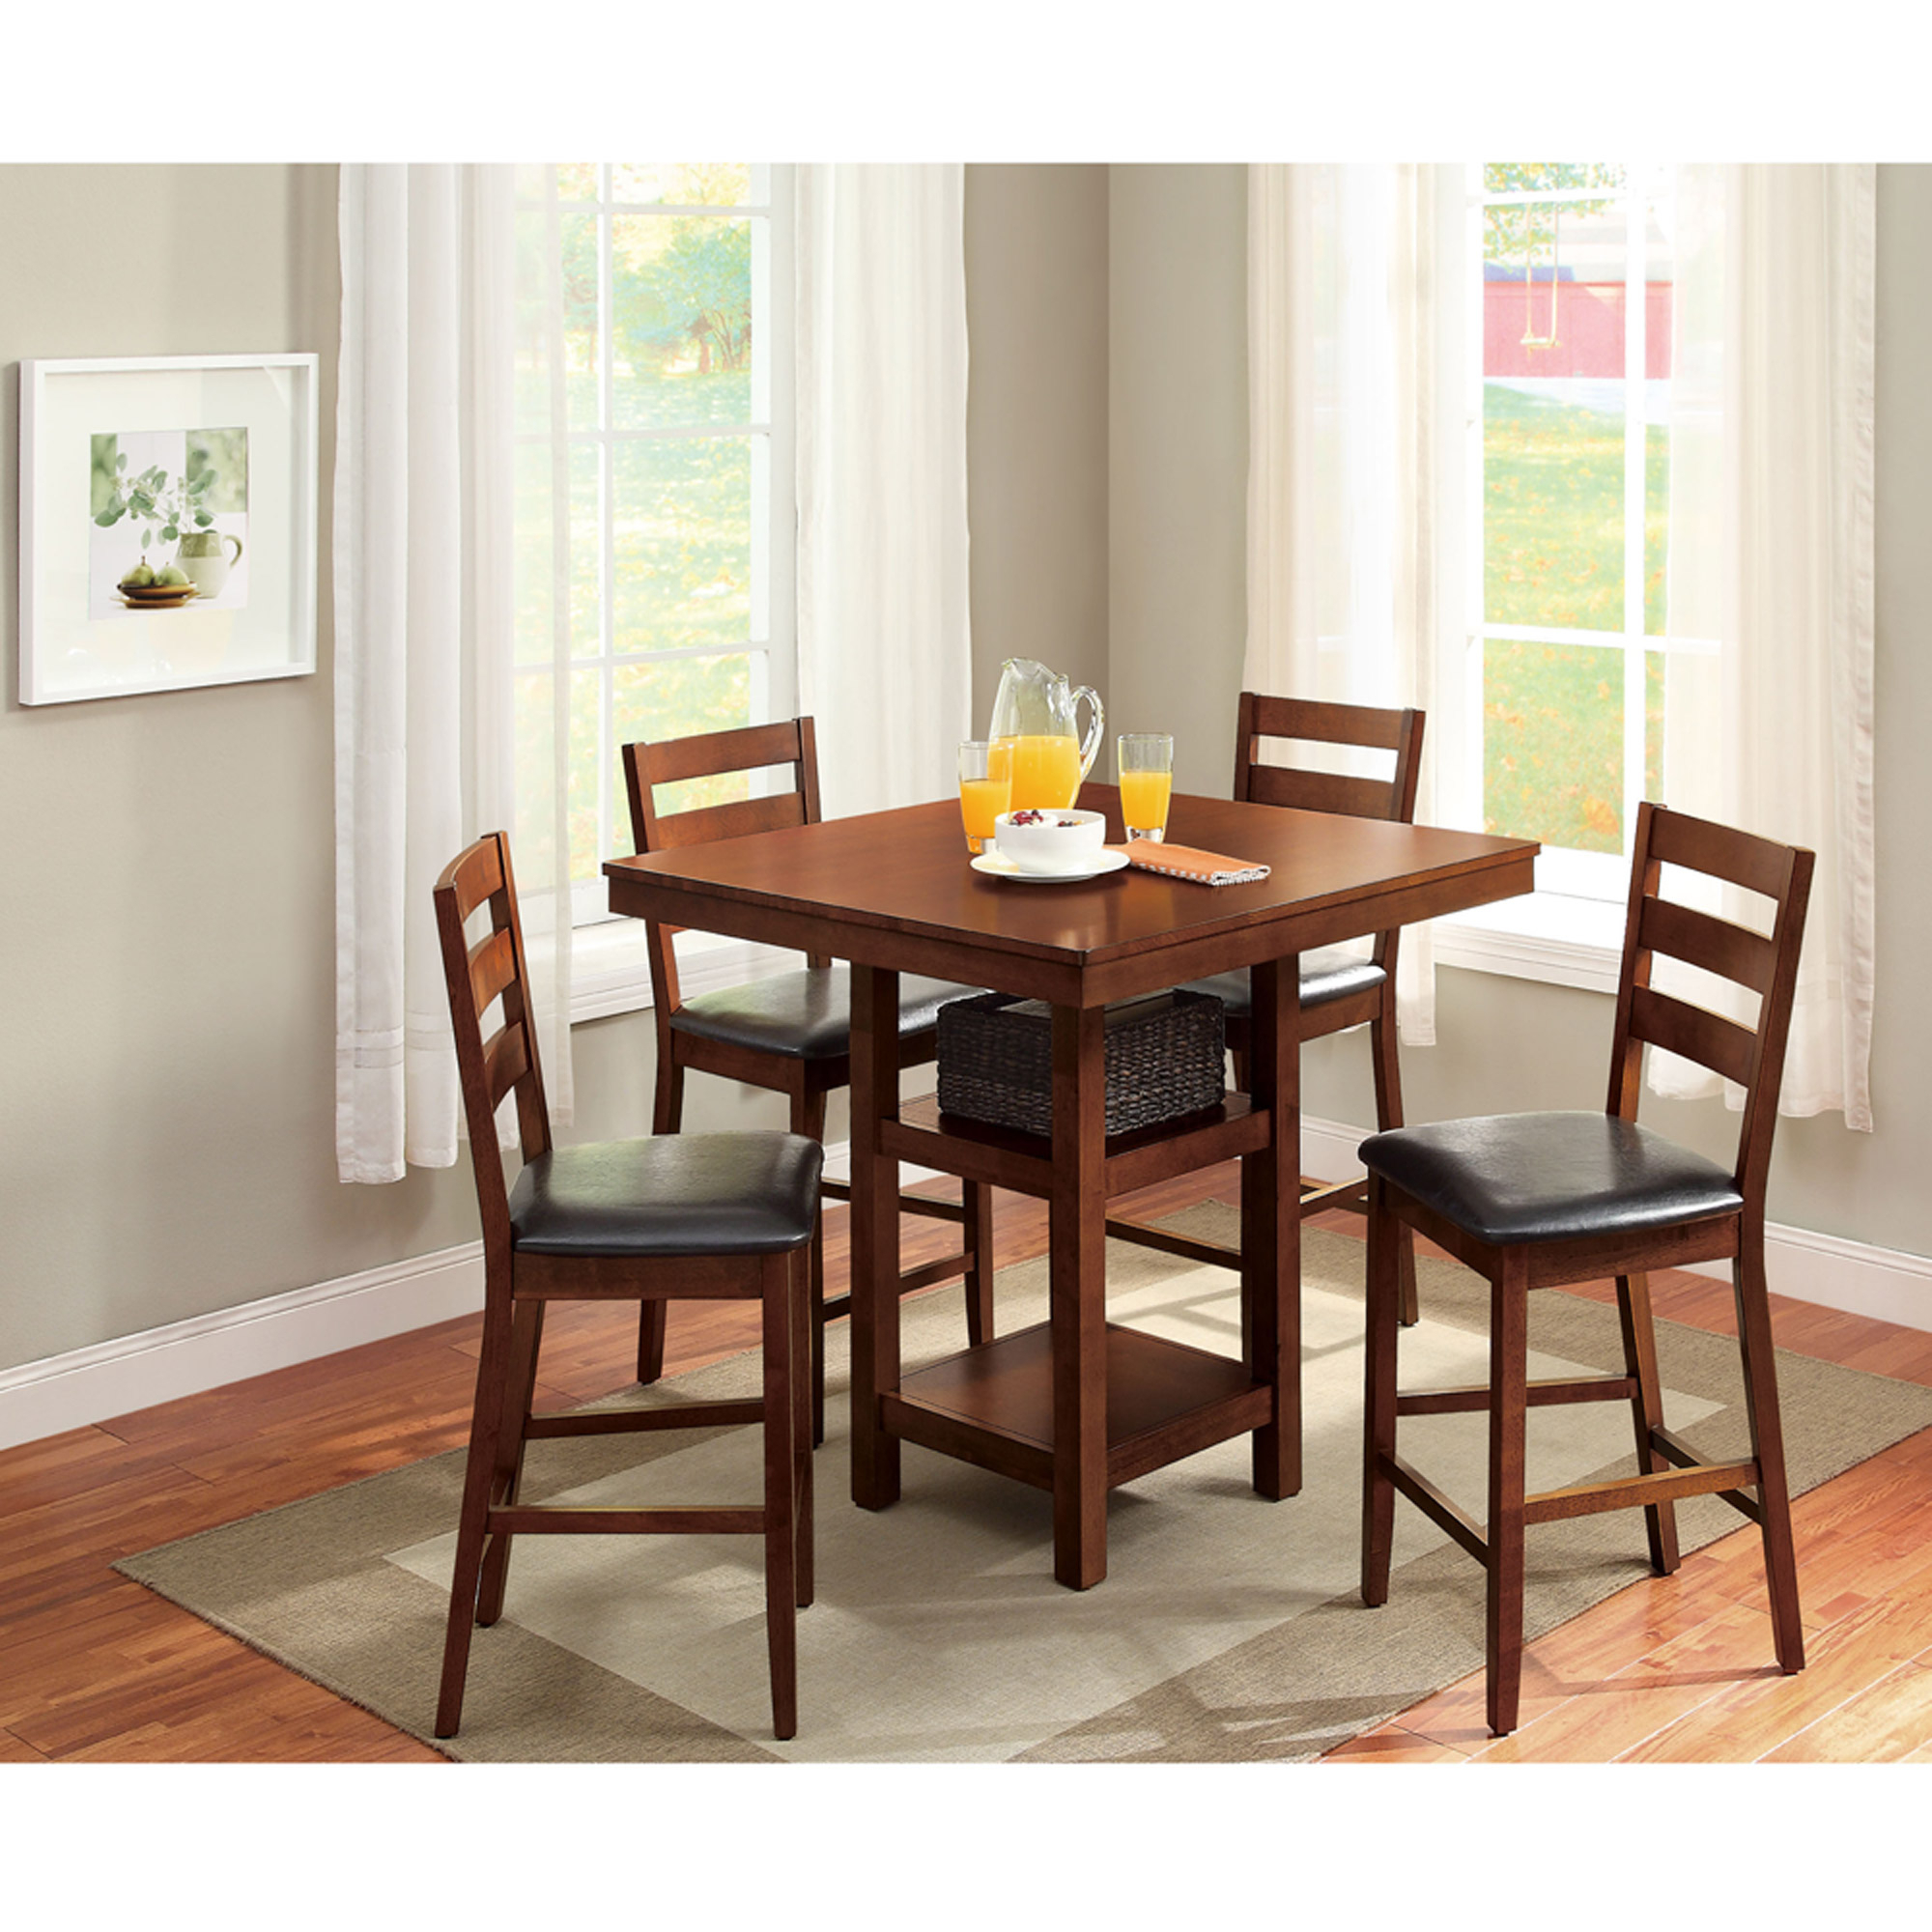 Counter Height Kitchen Table And Chair Set – Furniture & Interior Intended For Most Current Rossi 5 Piece Dining Sets (Image 4 of 20)